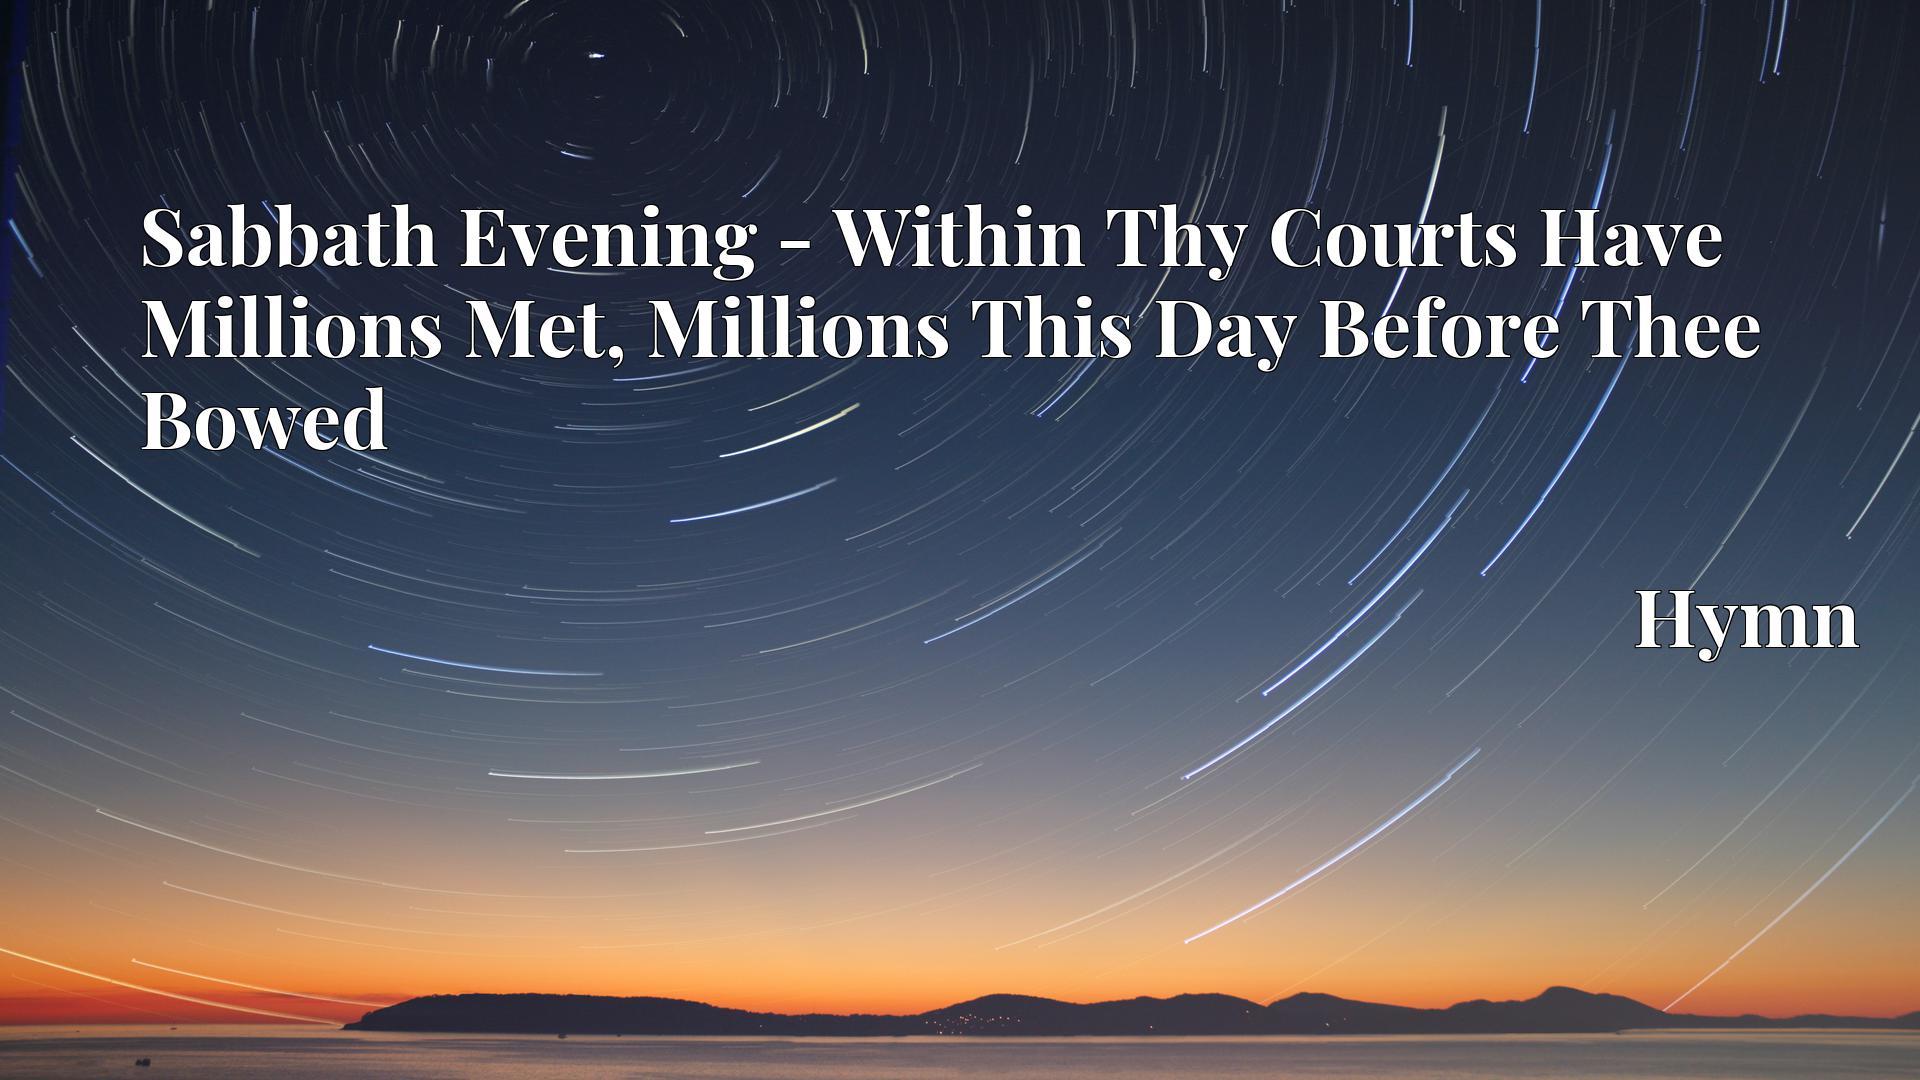 Sabbath Evening - Within Thy Courts Have Millions Met, Millions This Day Before Thee Bowed - Hymn